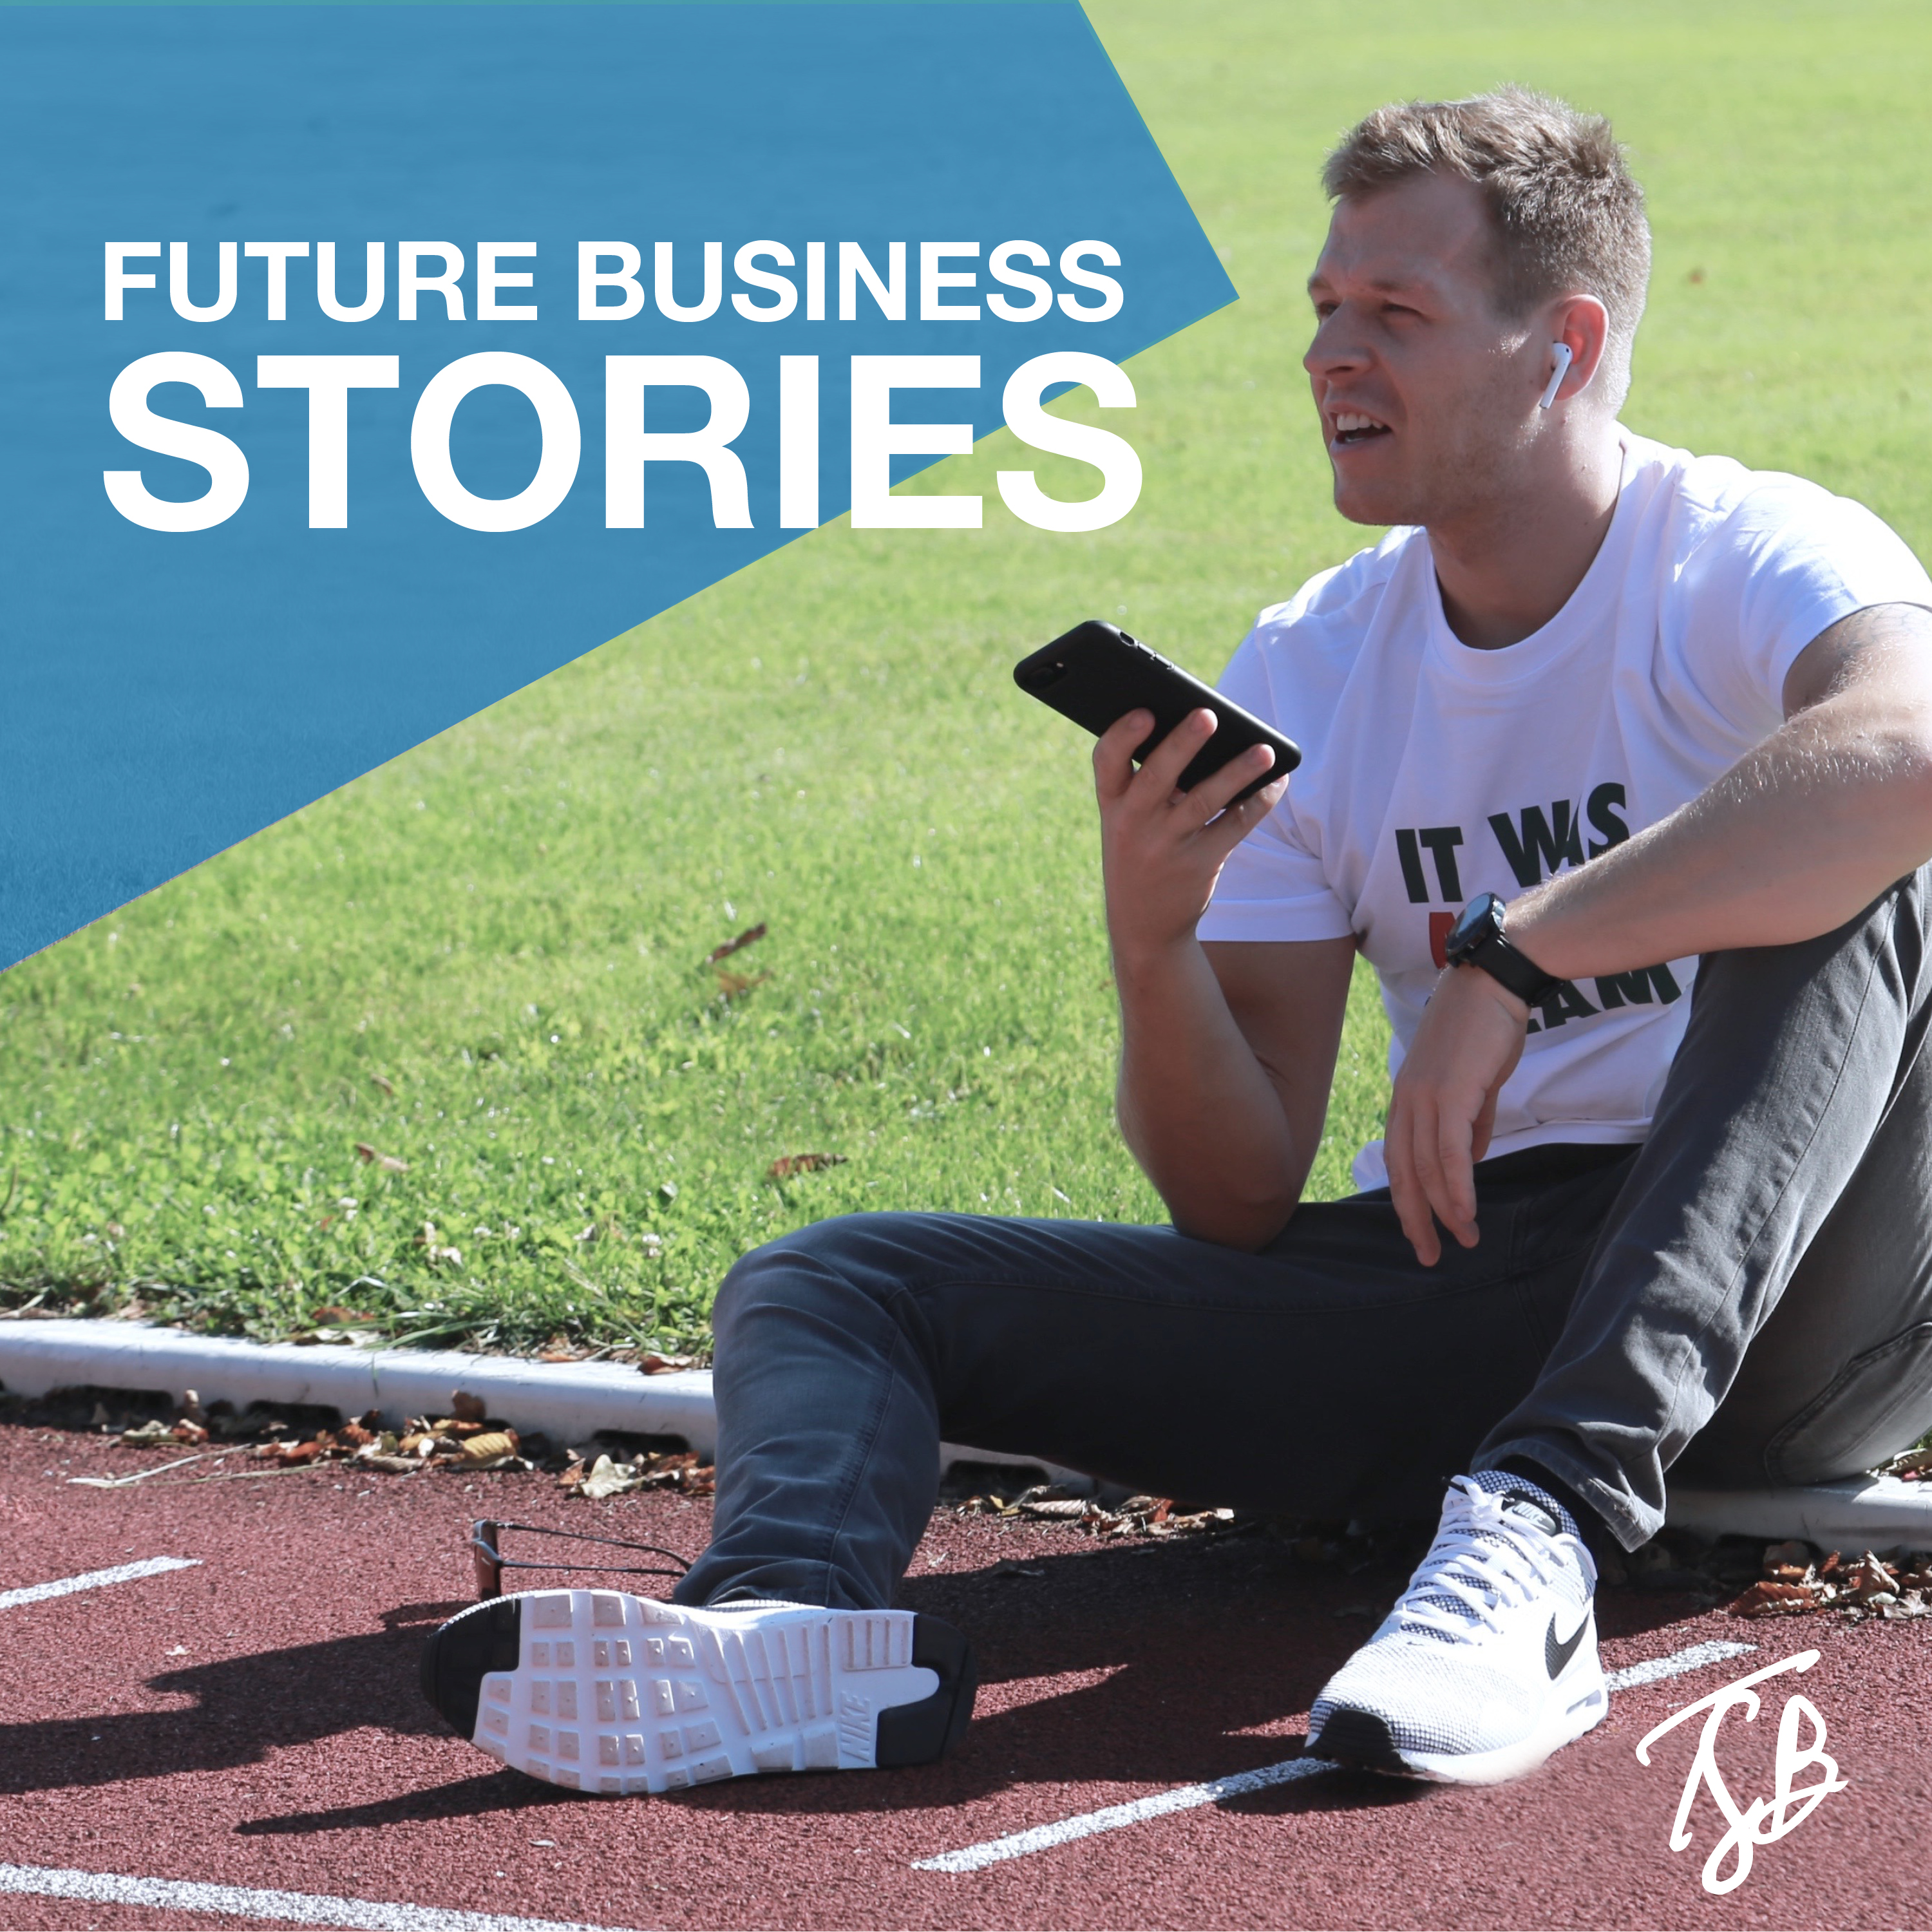 Future Business Stories